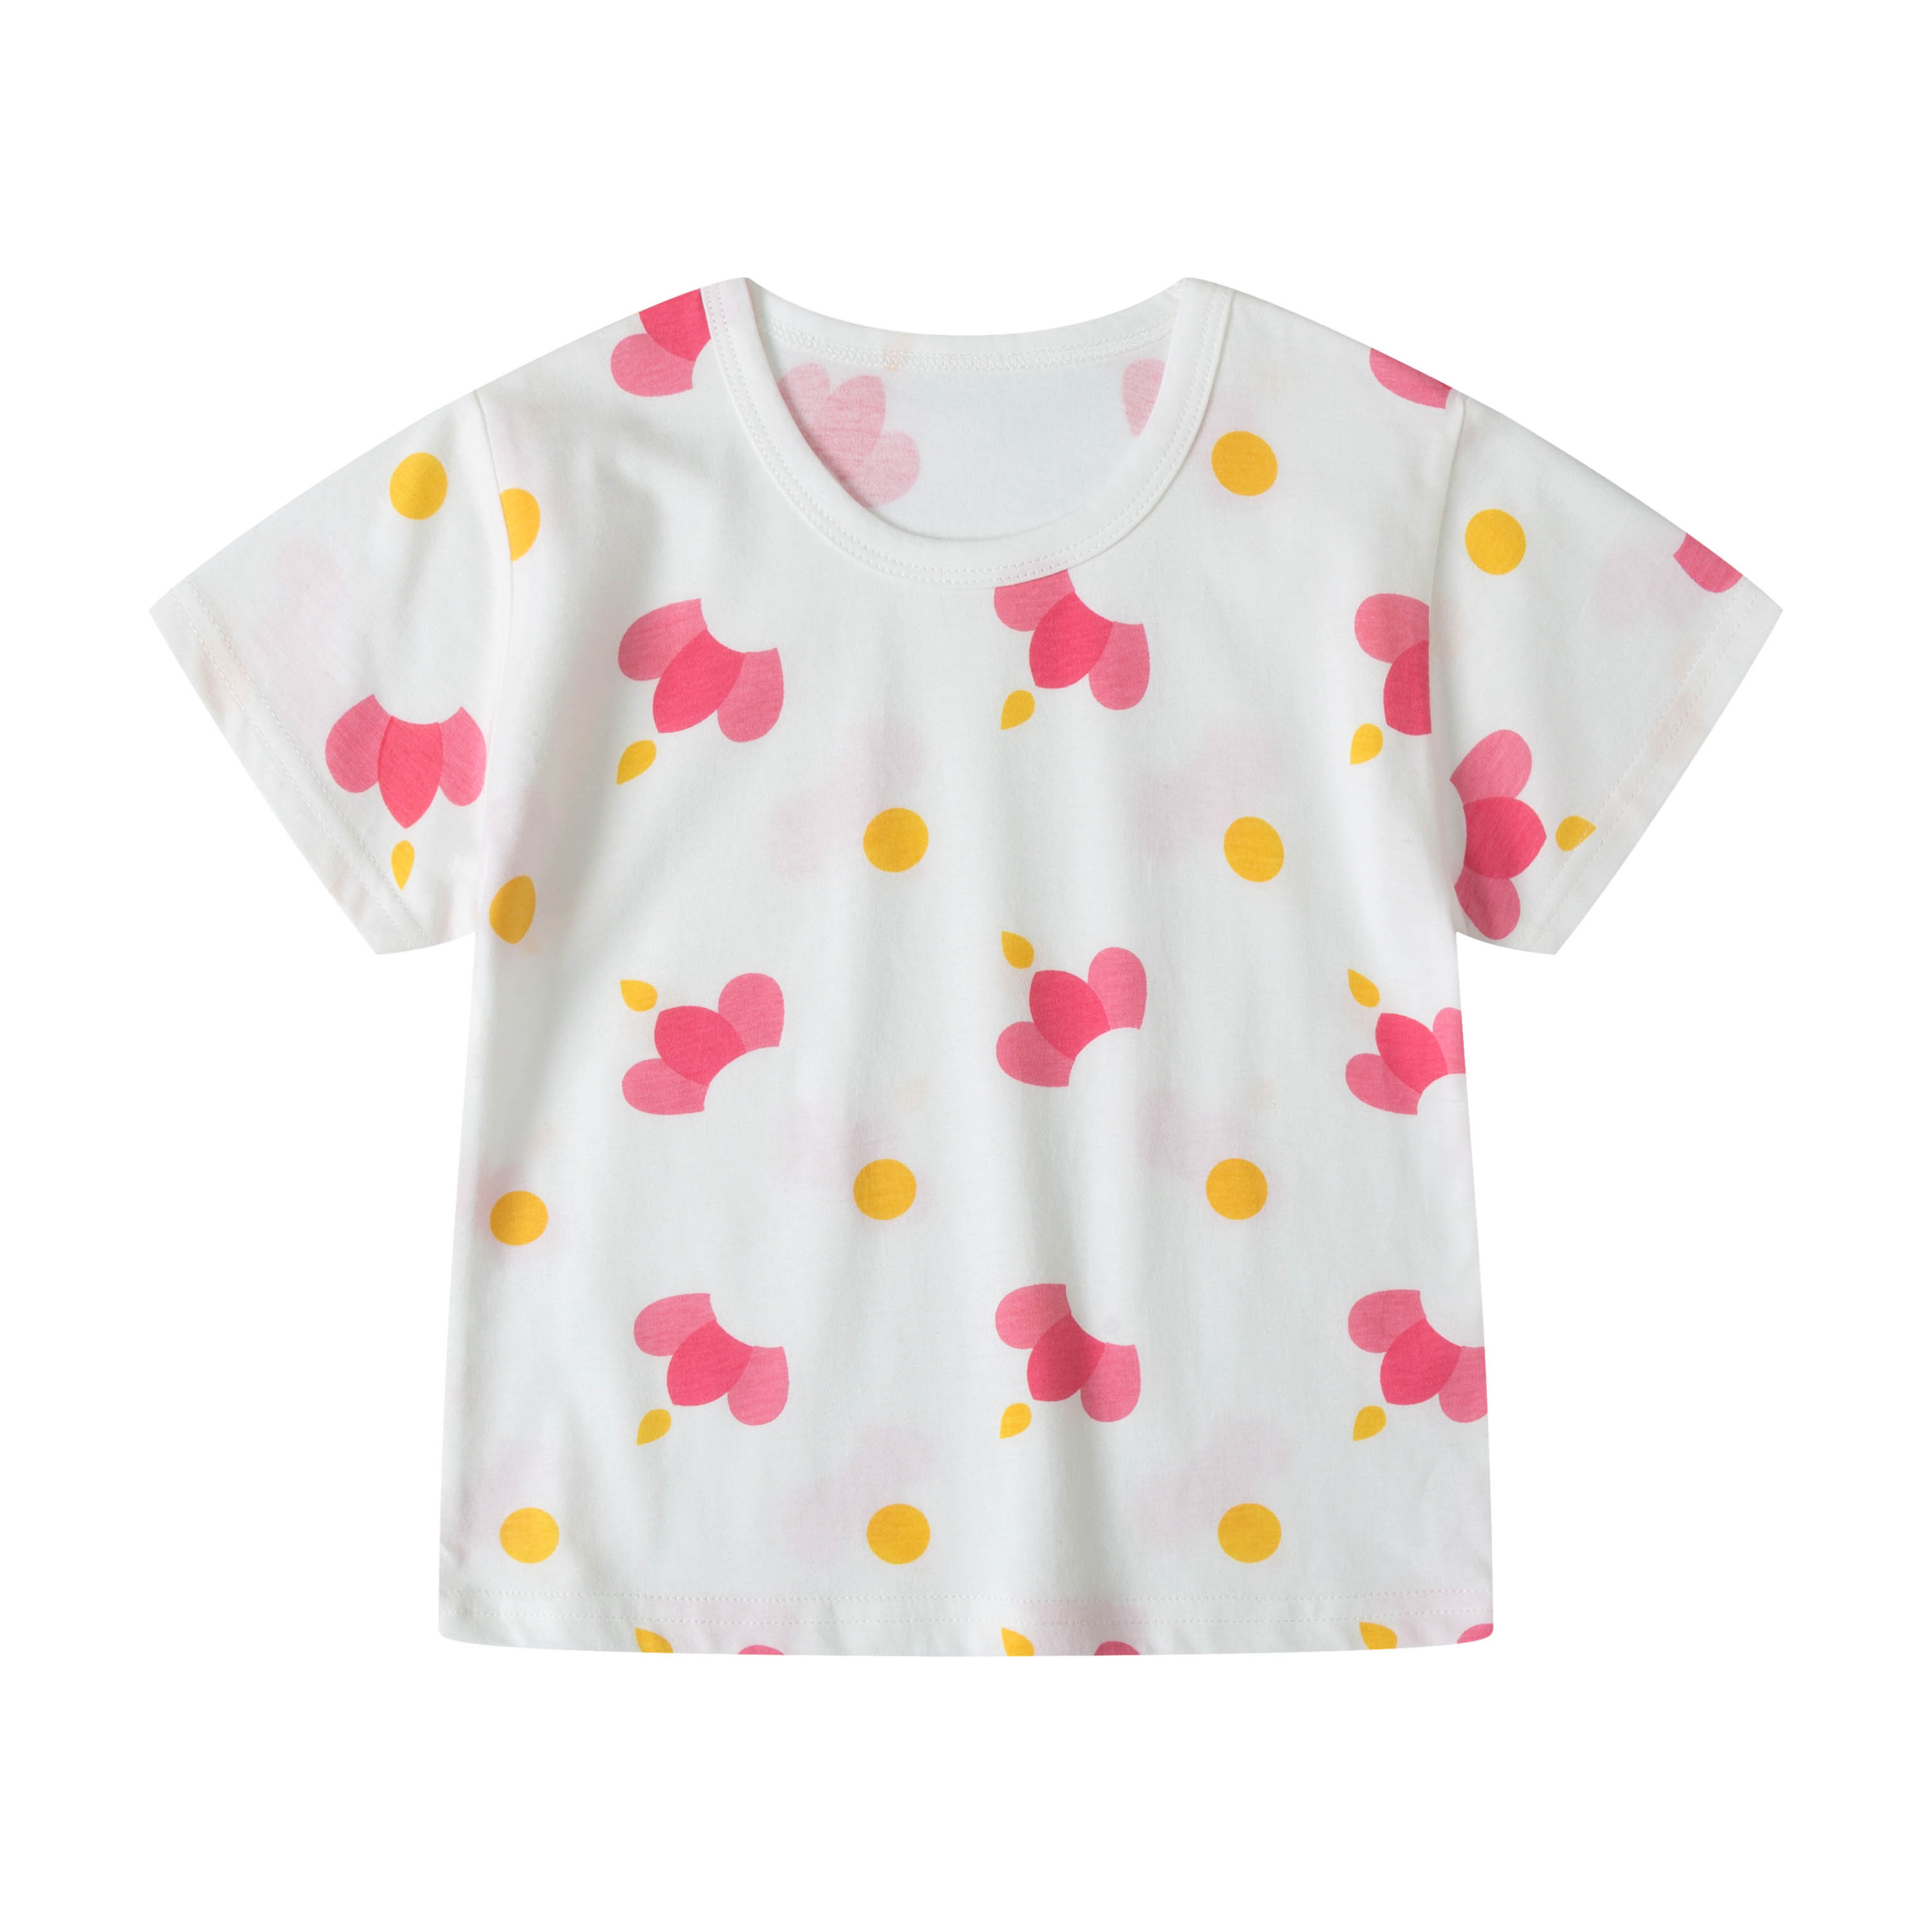 Kids Clothing Girls Tops Summer Cute Printed Cotton T- Shirts Children's Outfits